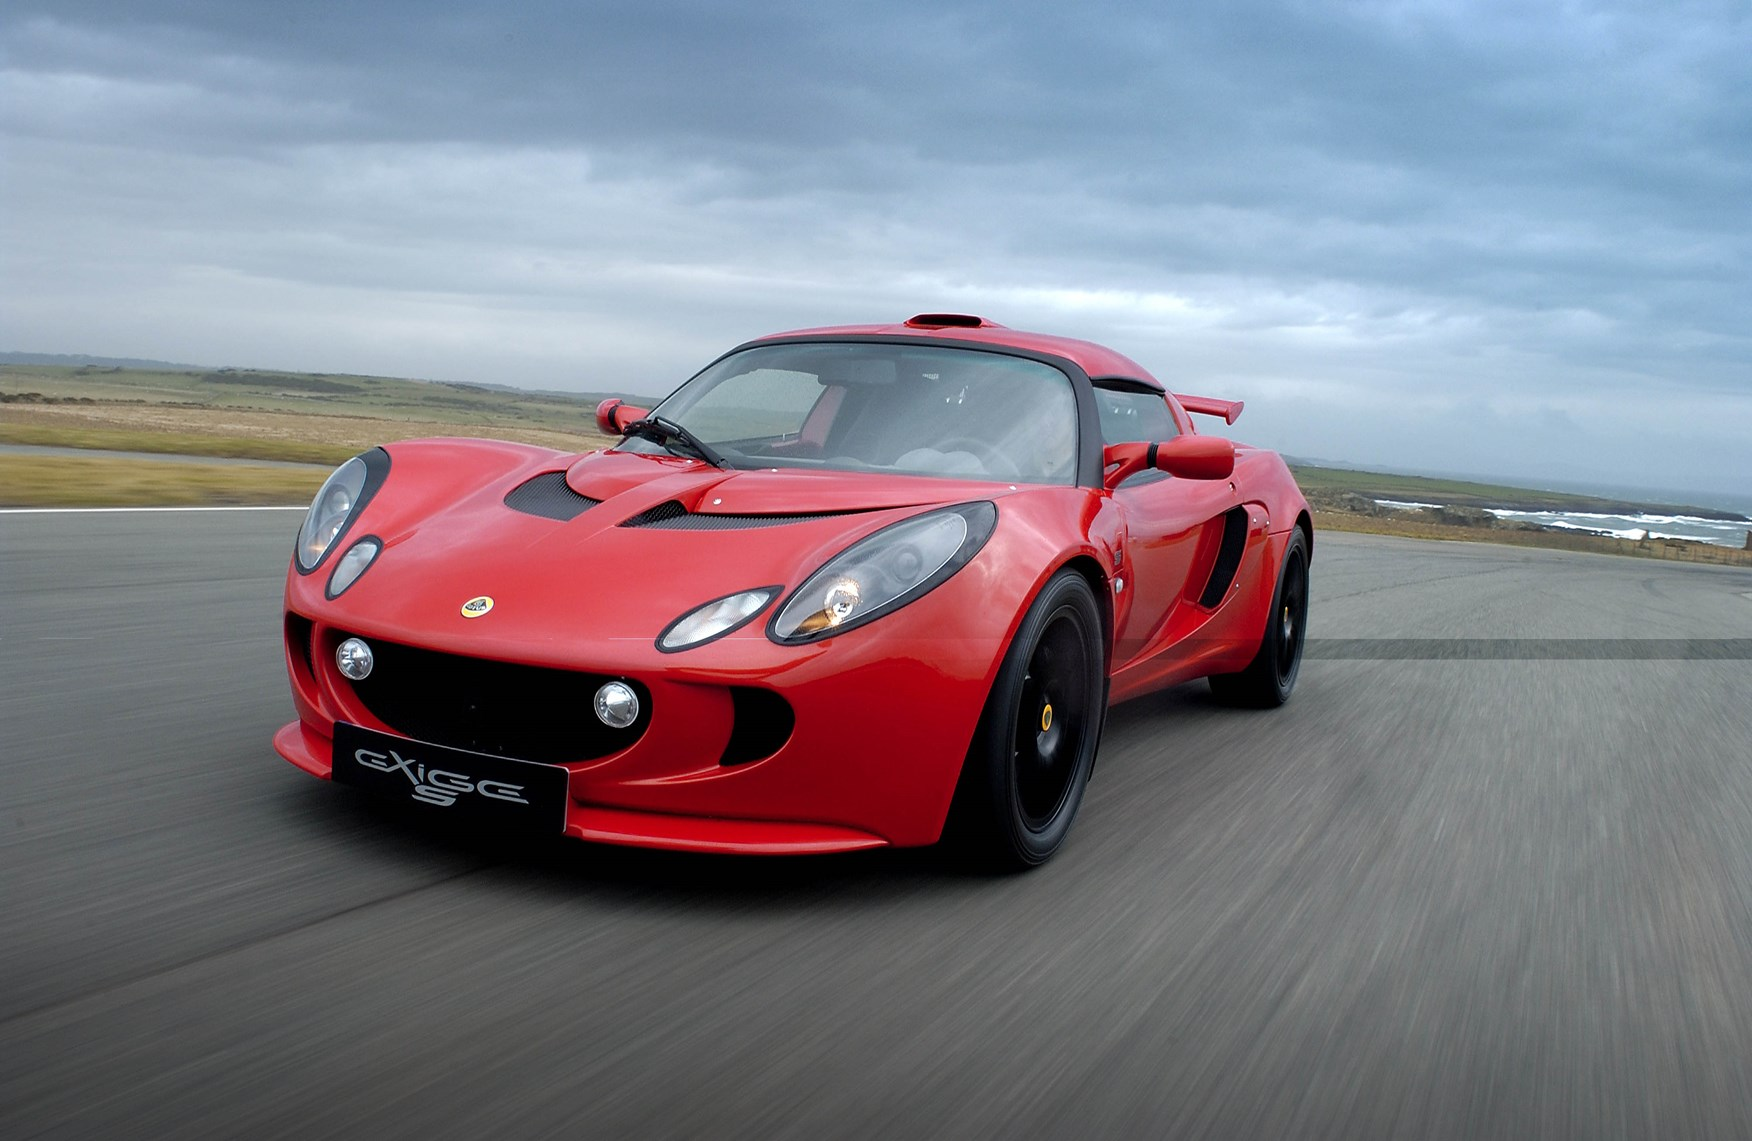 View All Images Of The Lotus Exige